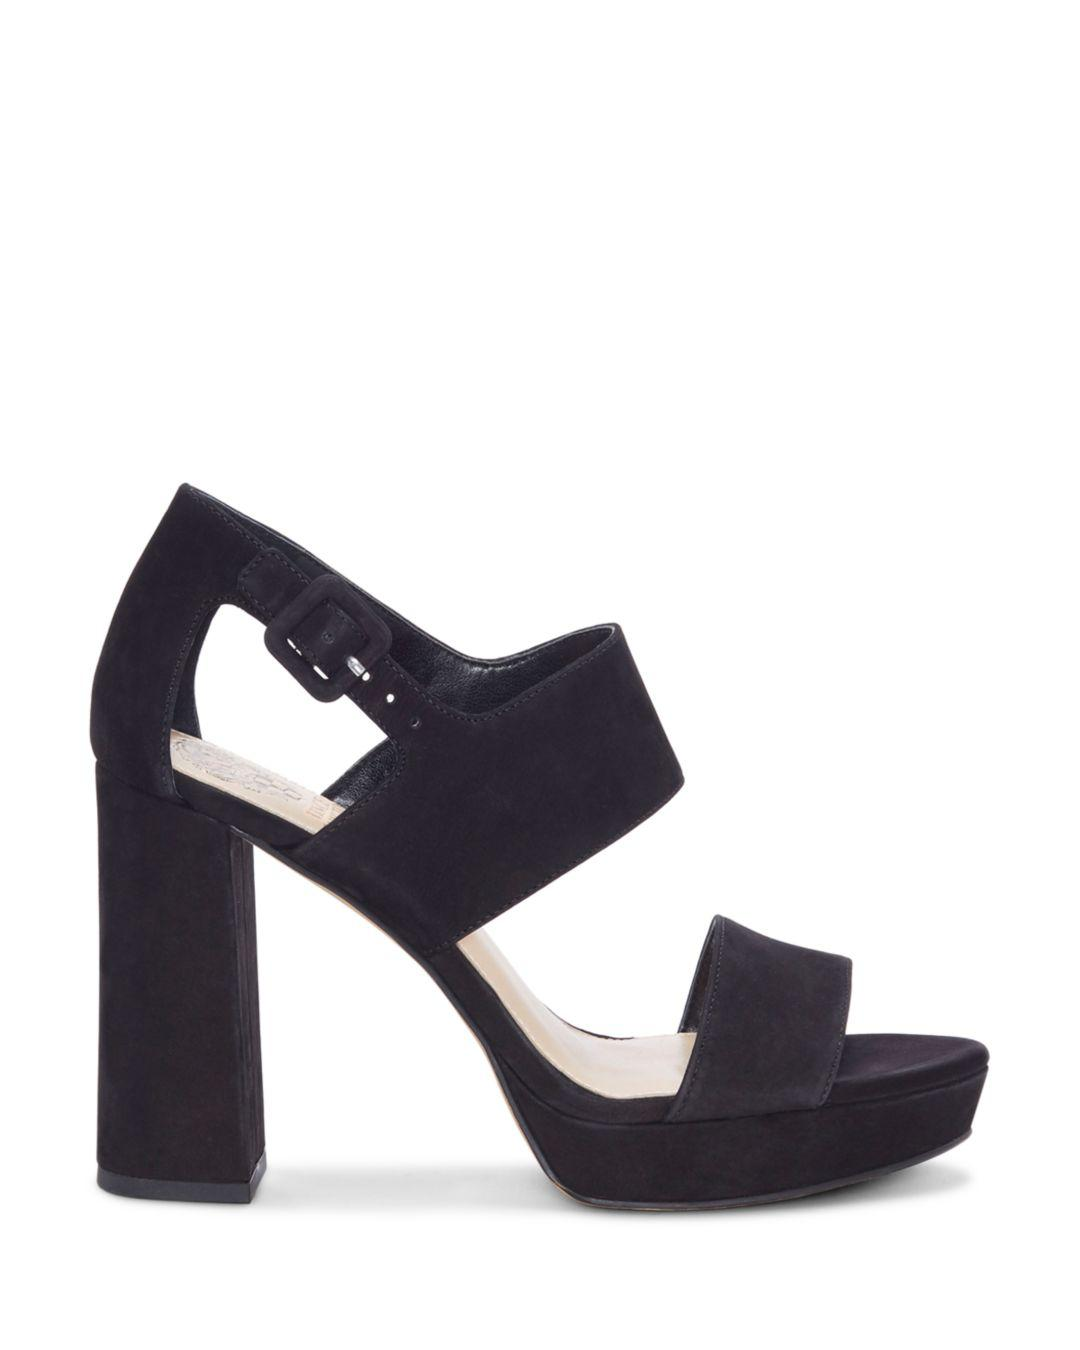 fb13a1b9d1d0 Lyst - Vince Camuto Women s Jayvid Suede Platform Sandals in Black - Save  7.936507936507937%